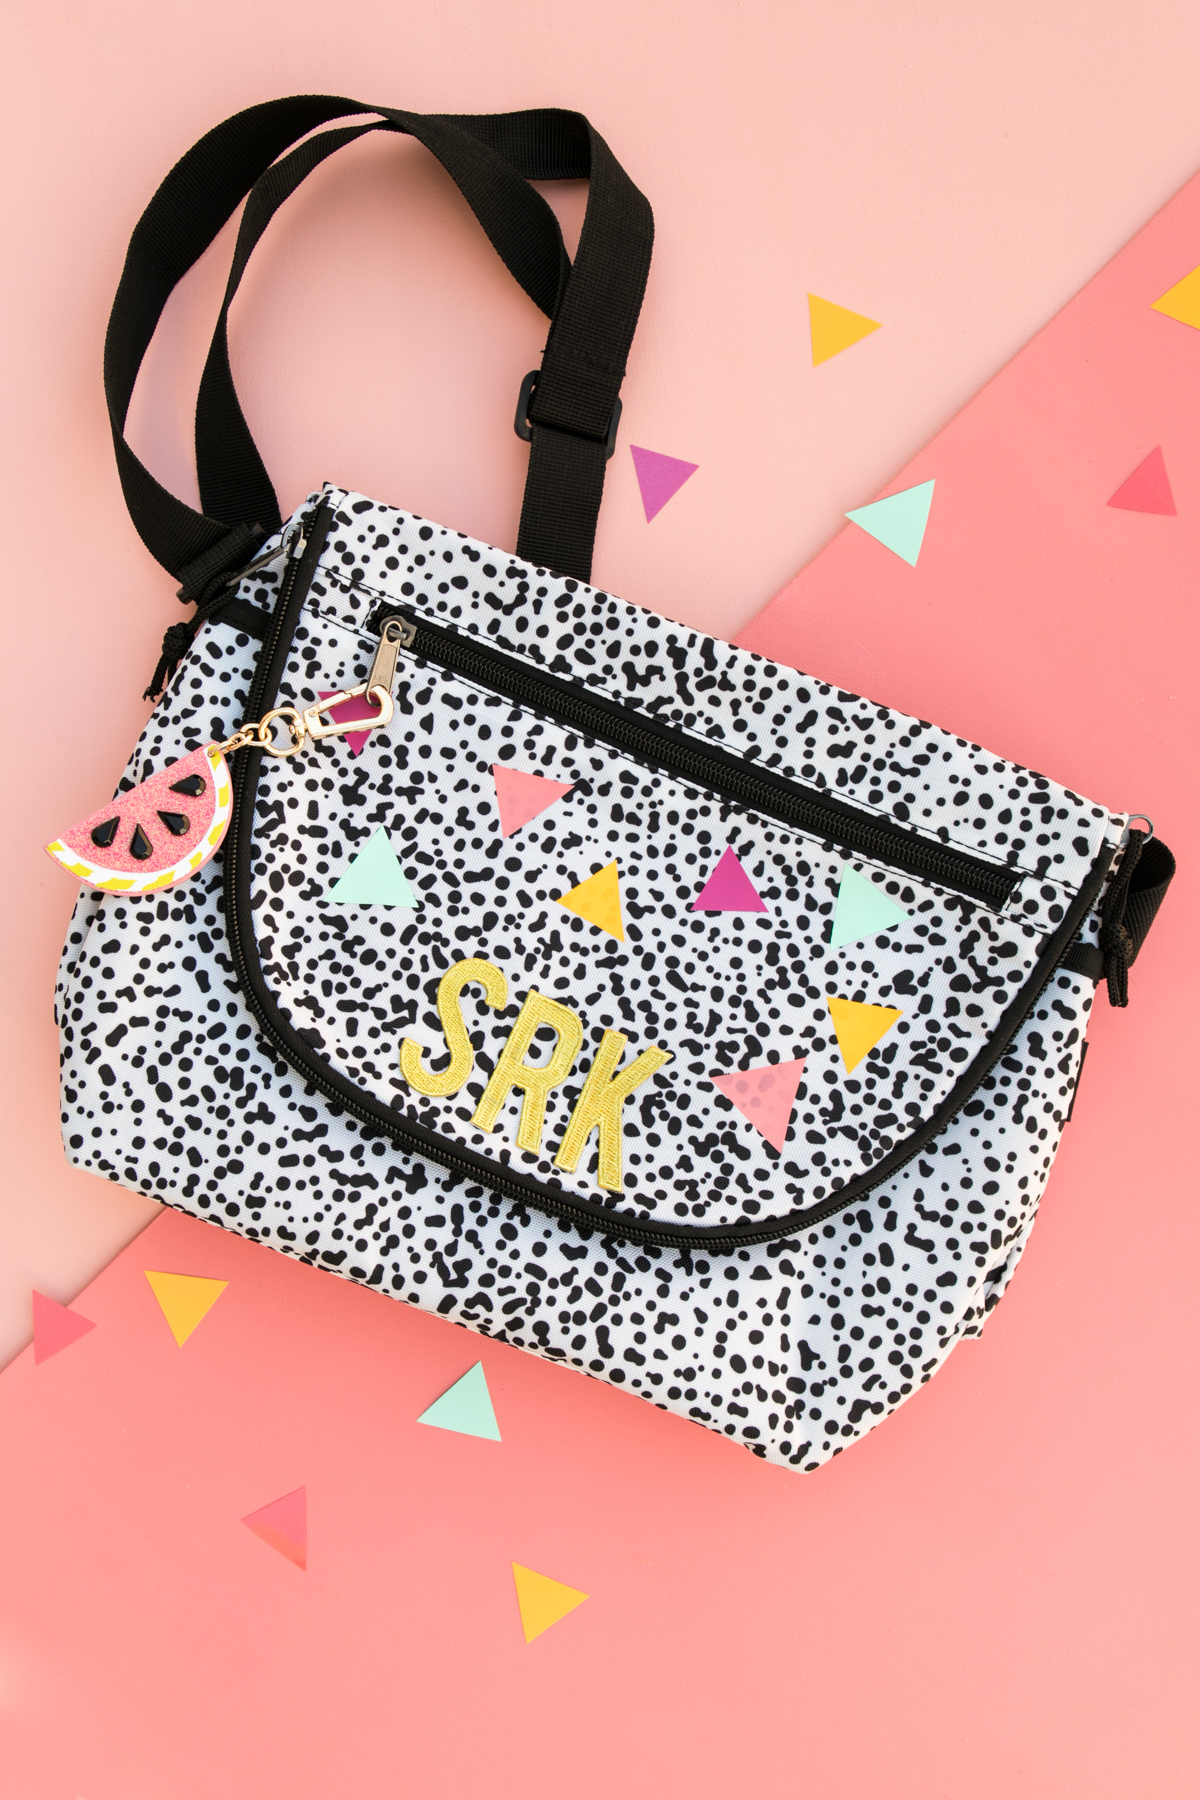 Indoor My Love School Supplies Just S At Think A Lunch Bag Is A Must Today Sharing An Easy Way To Personalize Alunch Diy Colorful Decorated Lunch Bag Sarah Hearts baby Cute Lunch Bags